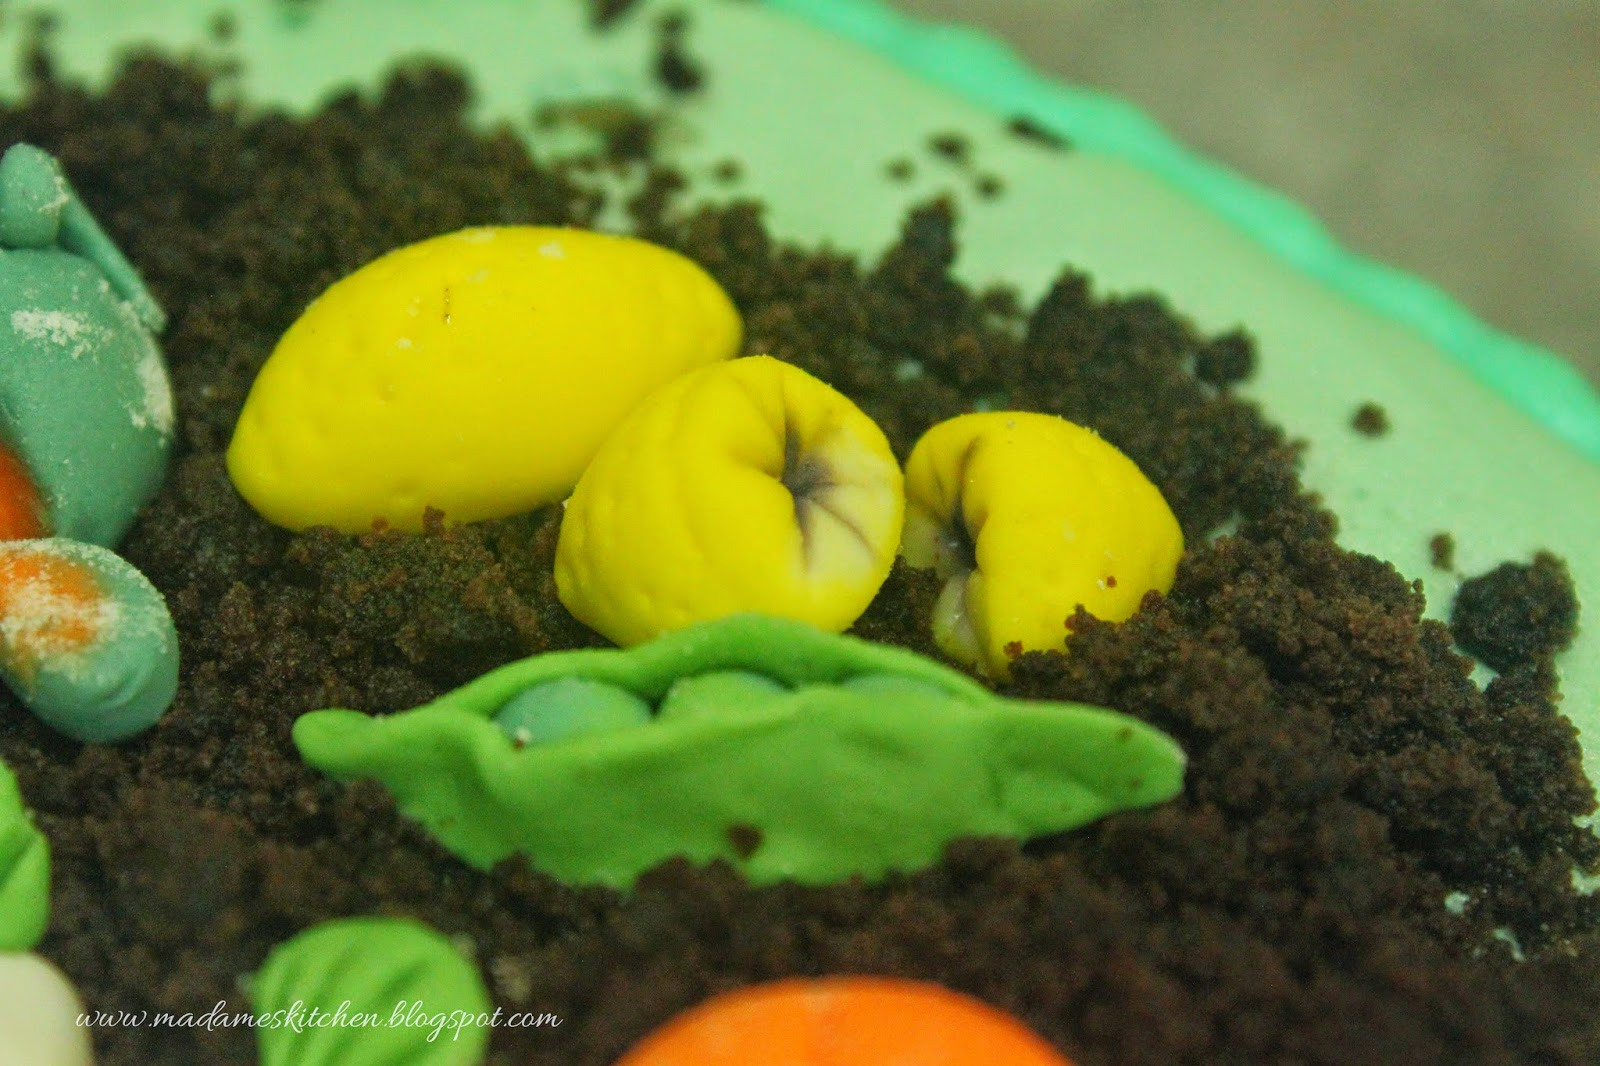 Madame's Kitchen: Vegetable Garden Cake